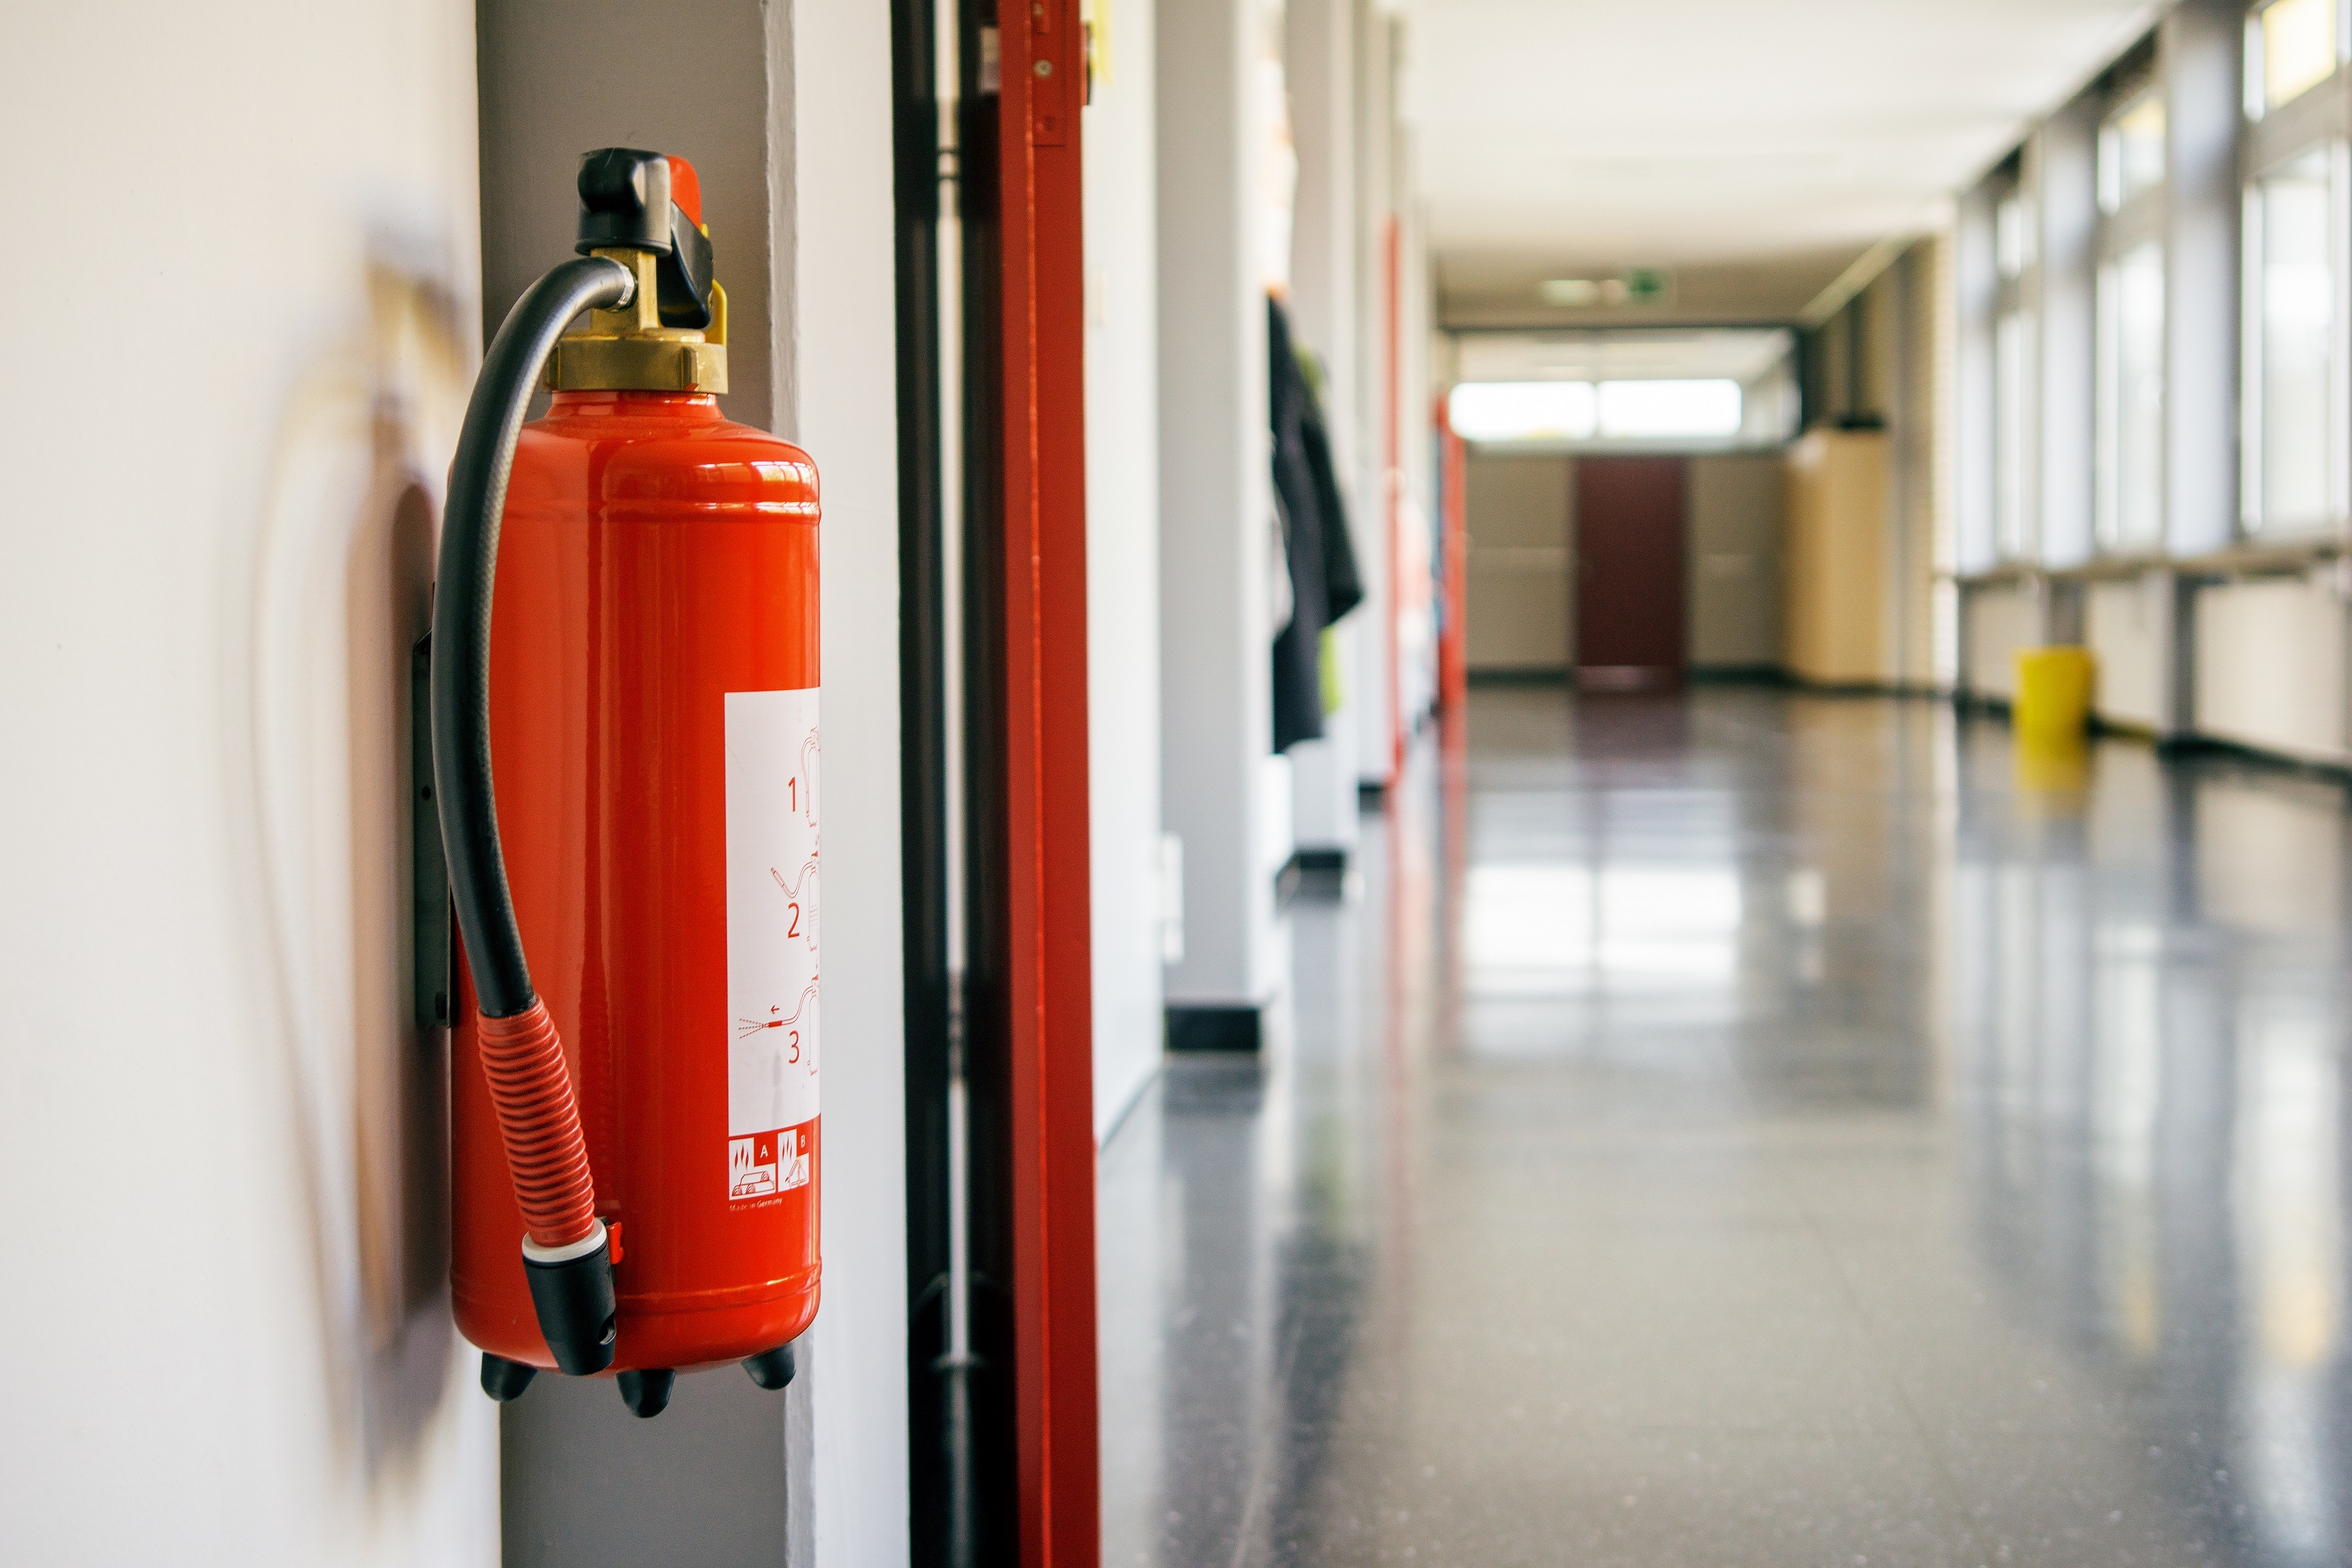 Fire Safety in Hospitals in the USA